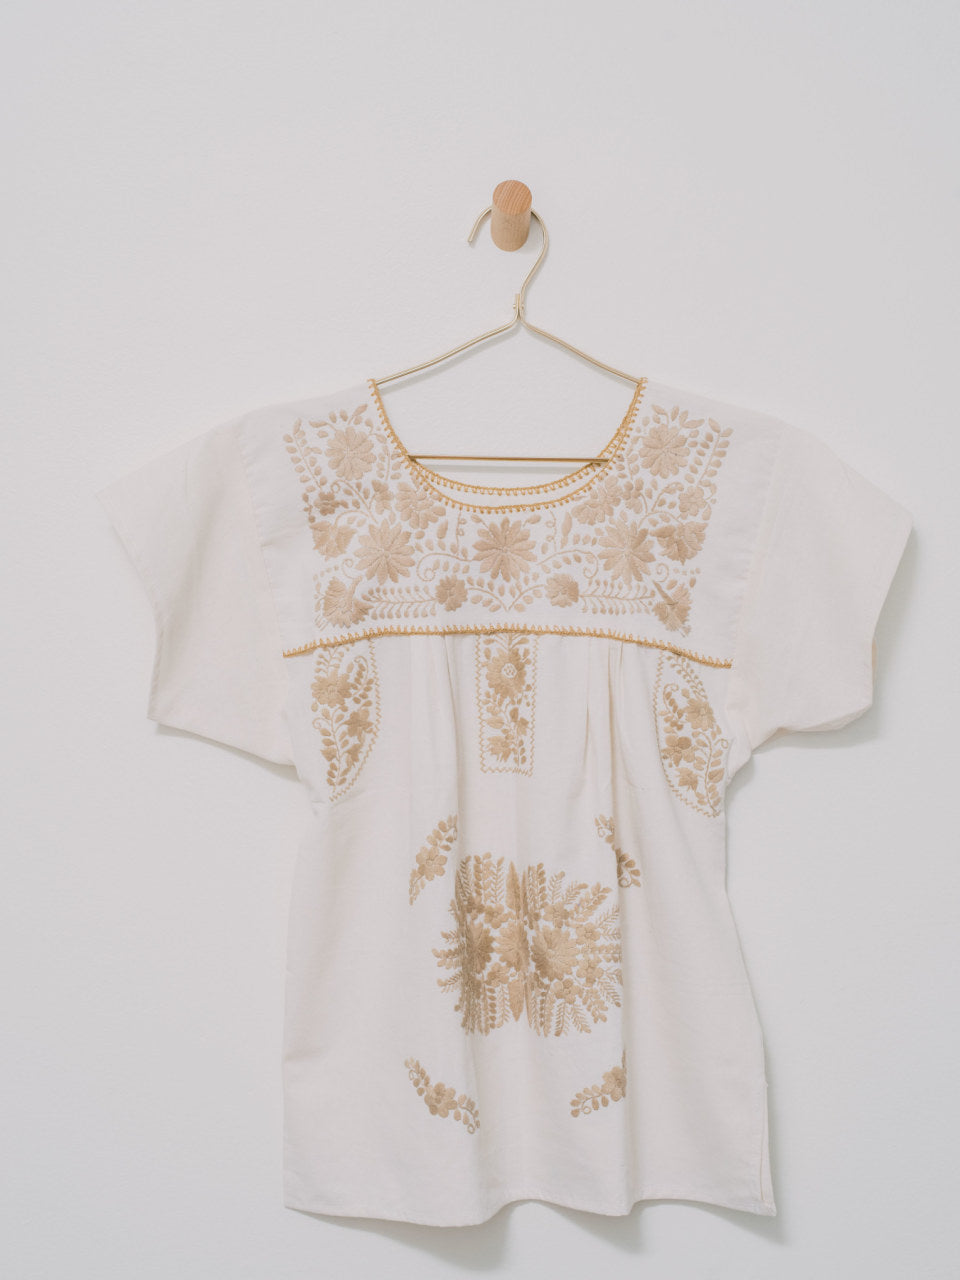 Crema Top (S/M) - Handmade, Embroidered Mexican Women Top - Chokolita